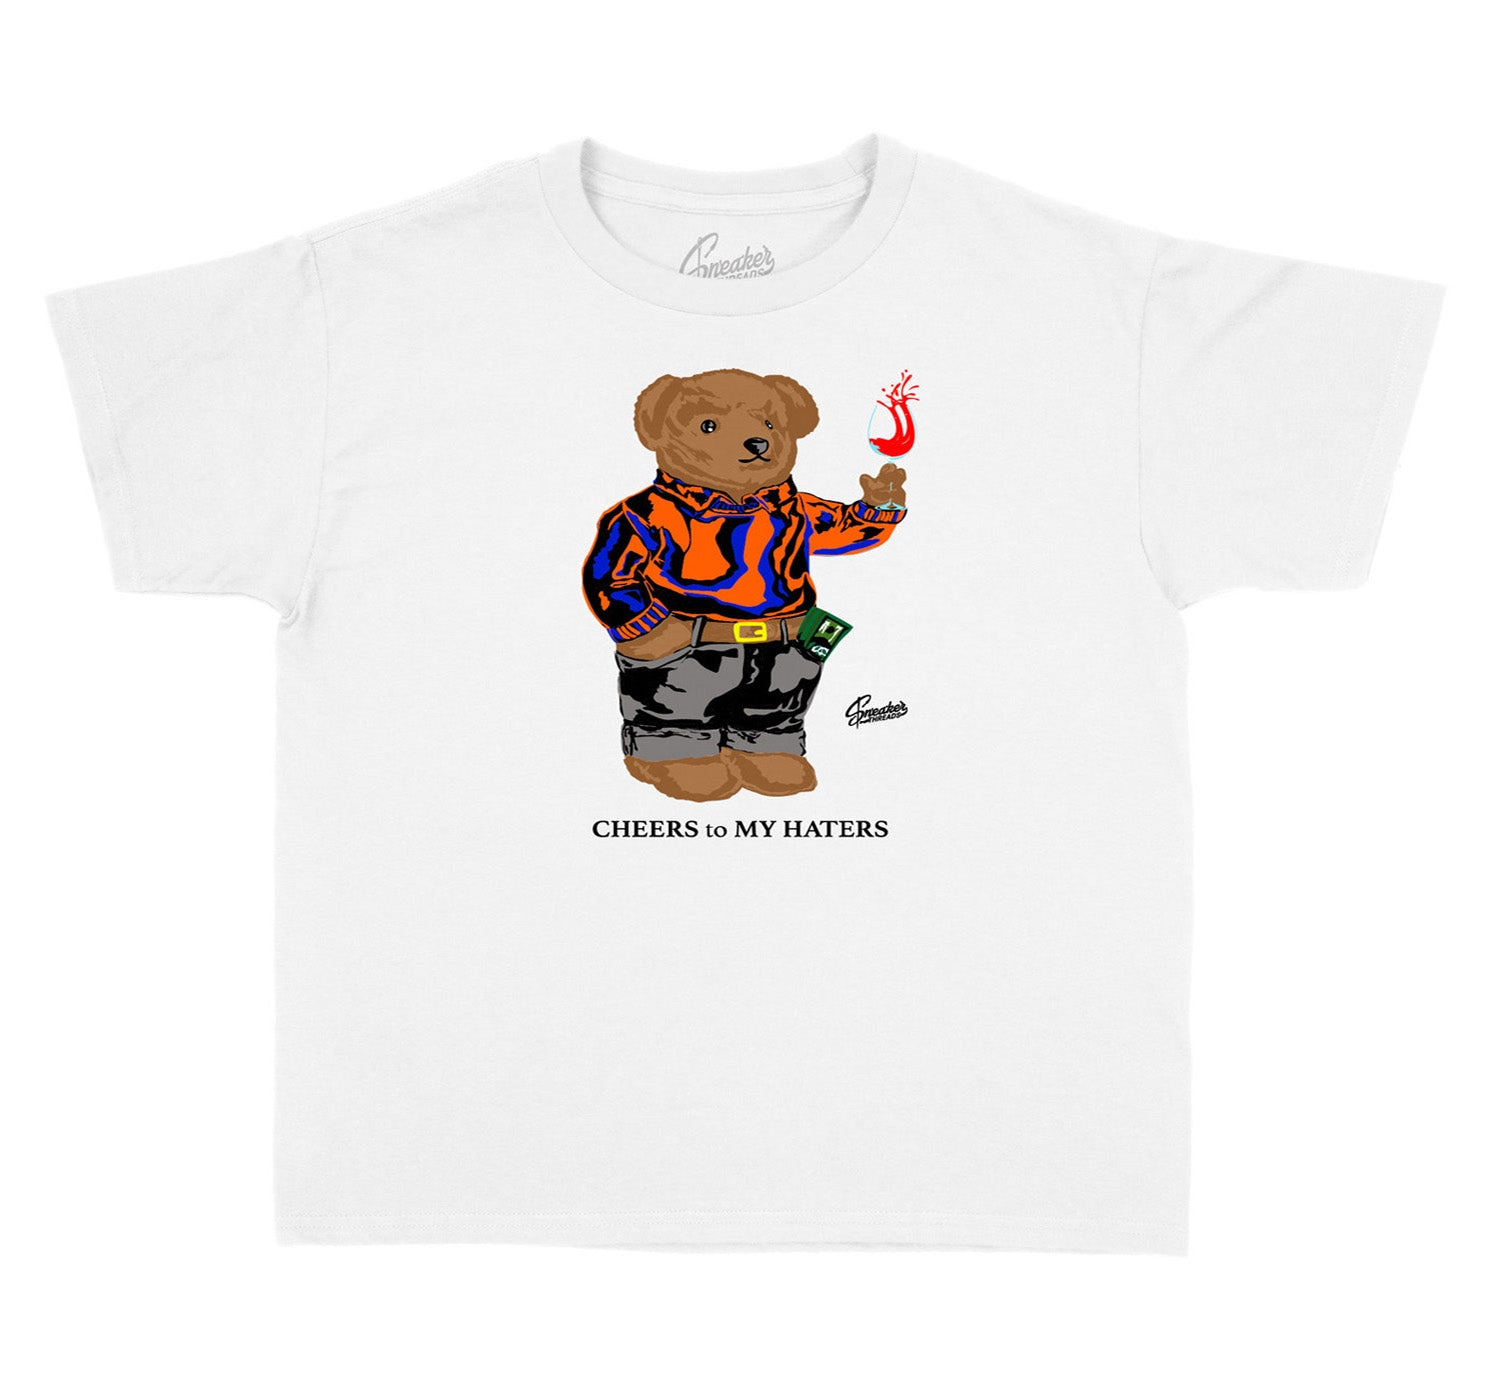 Kids jordan 3 knicks tees